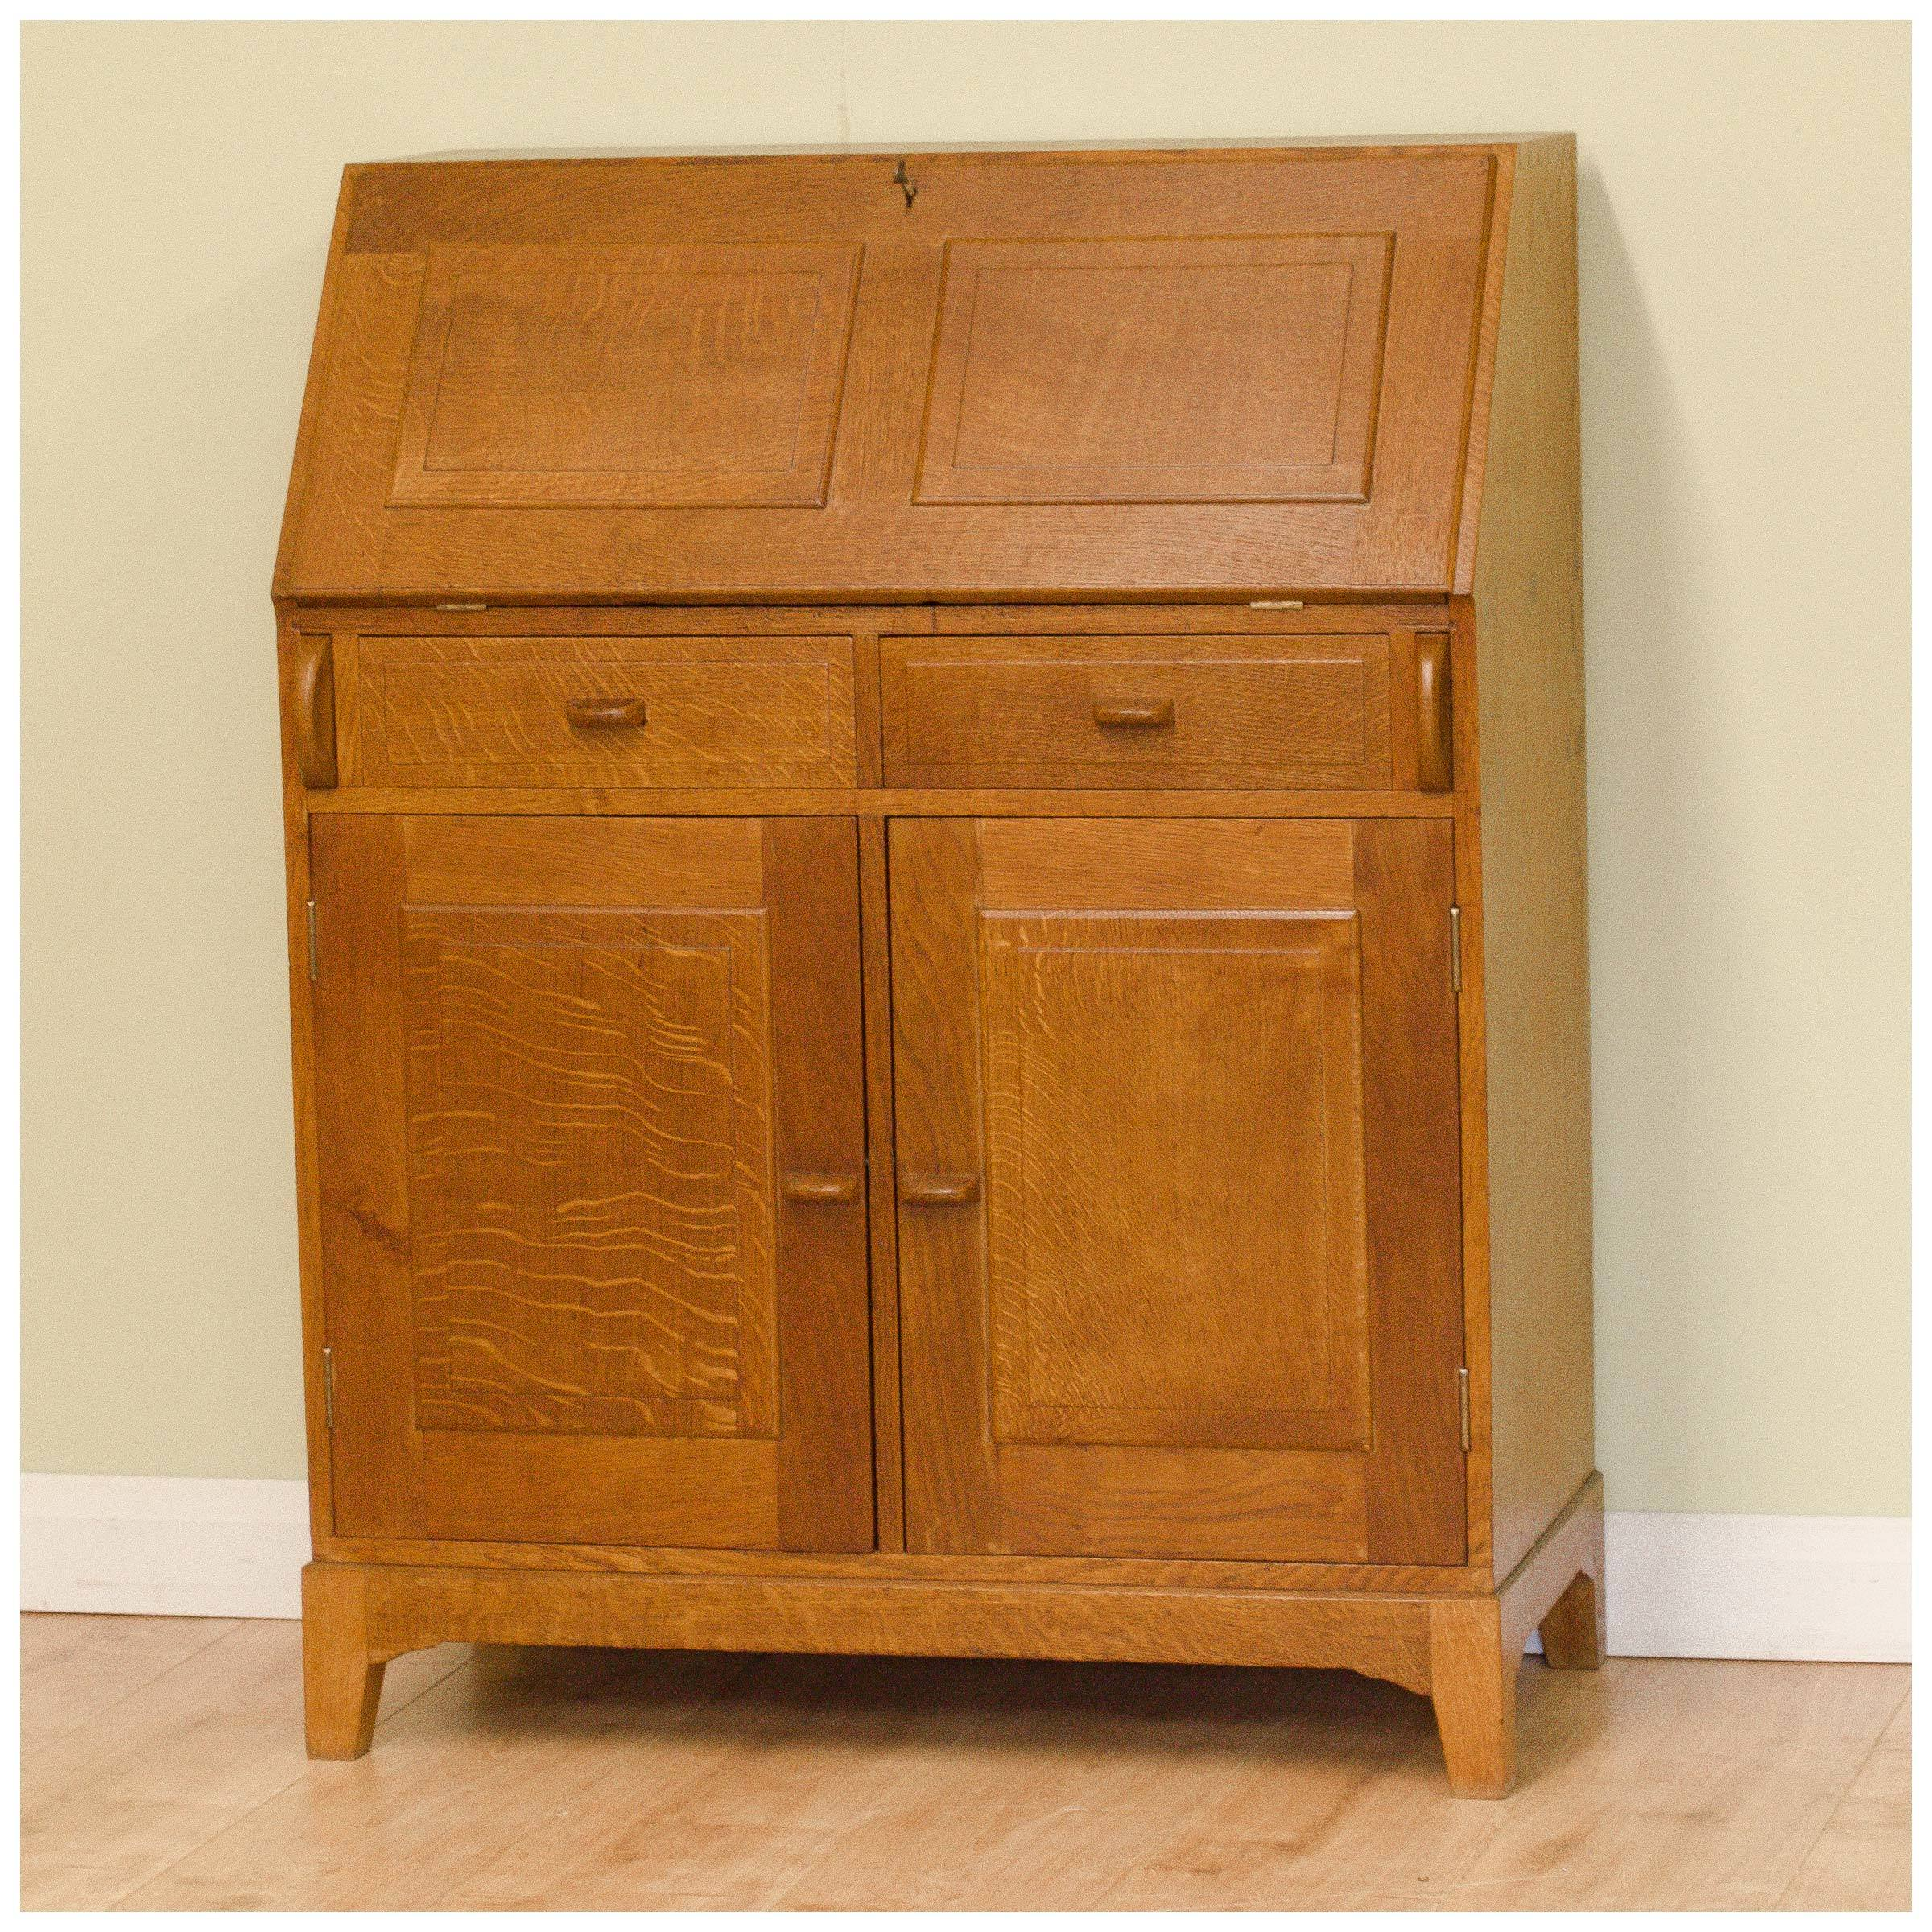 arts-crafts-cotswold-school-oak-bureau-by-fred-gardiner-ex-peter-waals-b0020120a.jpg